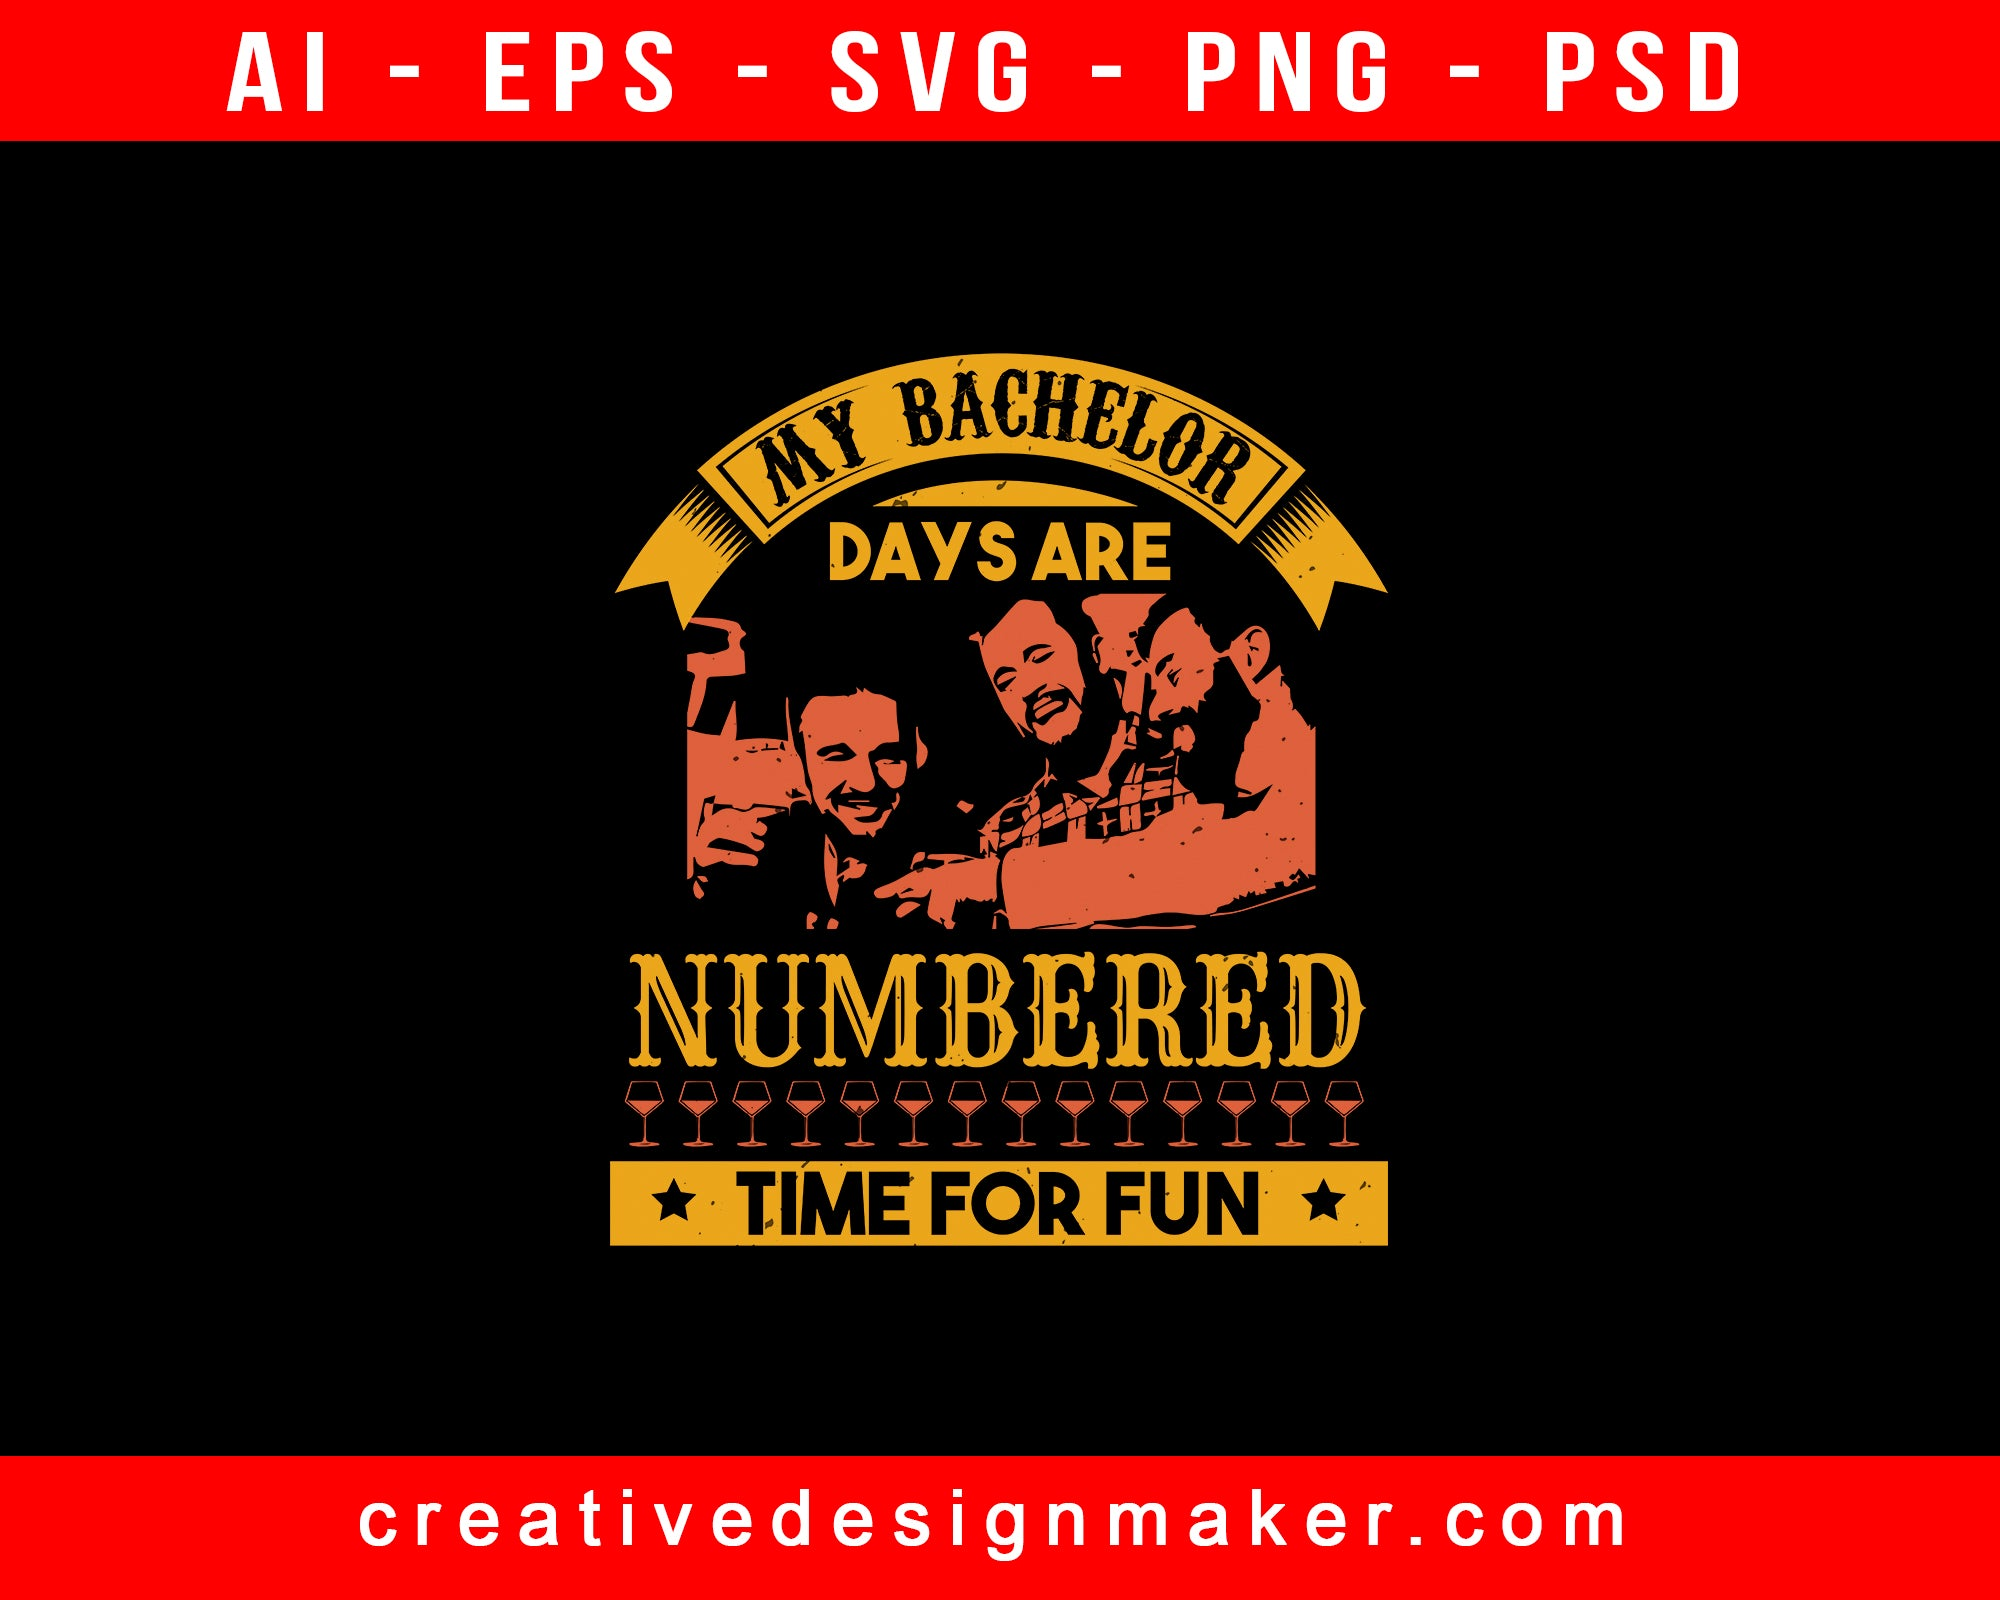 My Bachelor Days Are Numbered Time For Fun Party Print Ready Editable T-Shirt SVG Design!